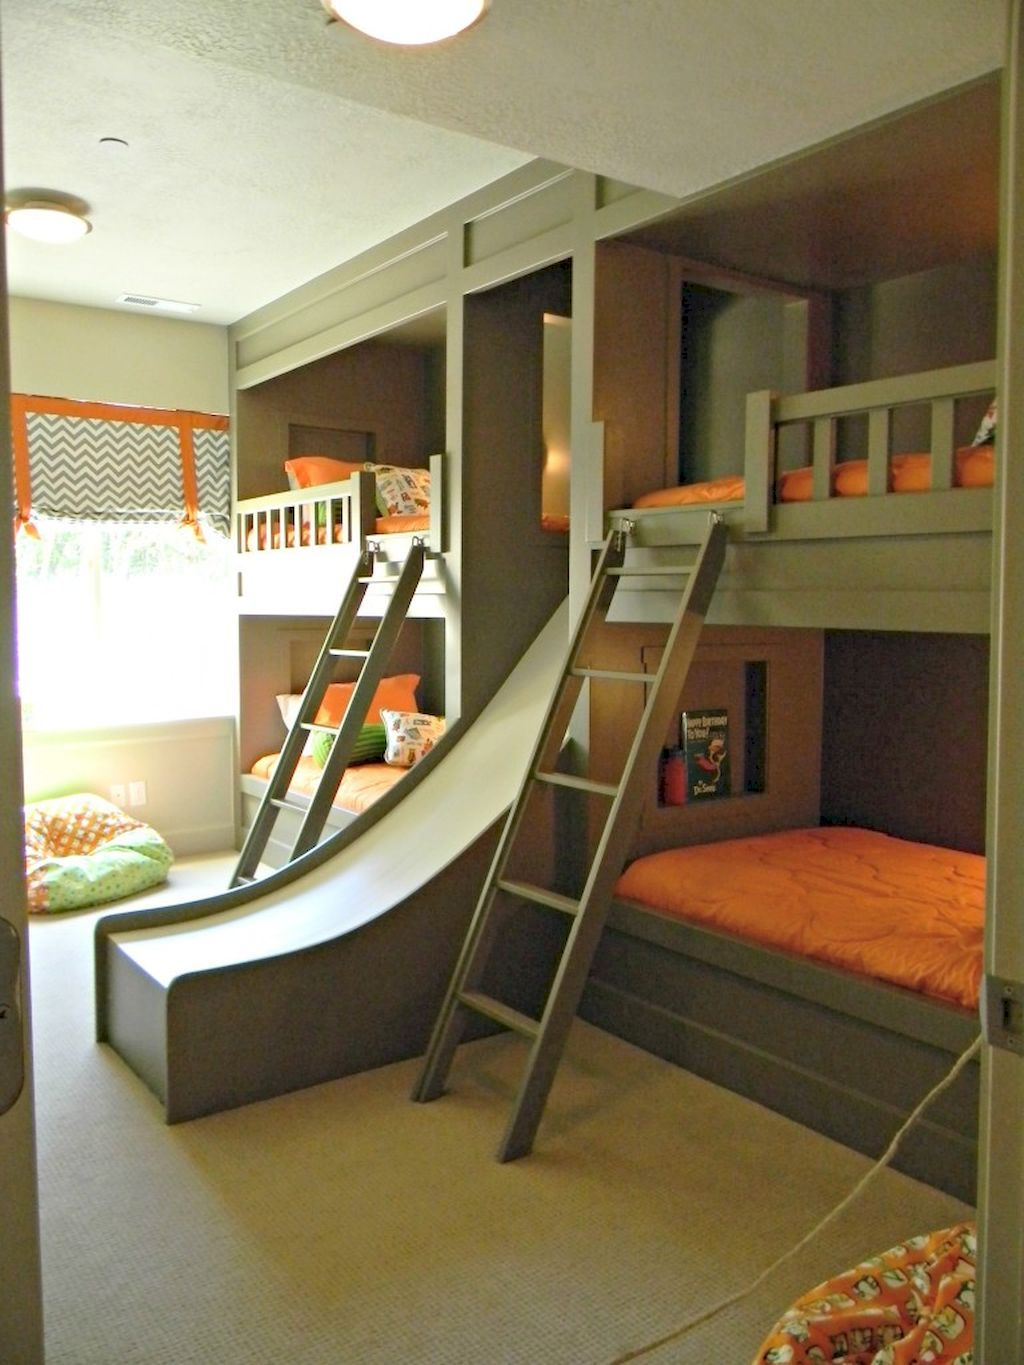 Bedroom Designs Kids Unique 45 Gorgeous Bedroom Design Decor Ideas For Kids  Bedrooms House Inspiration